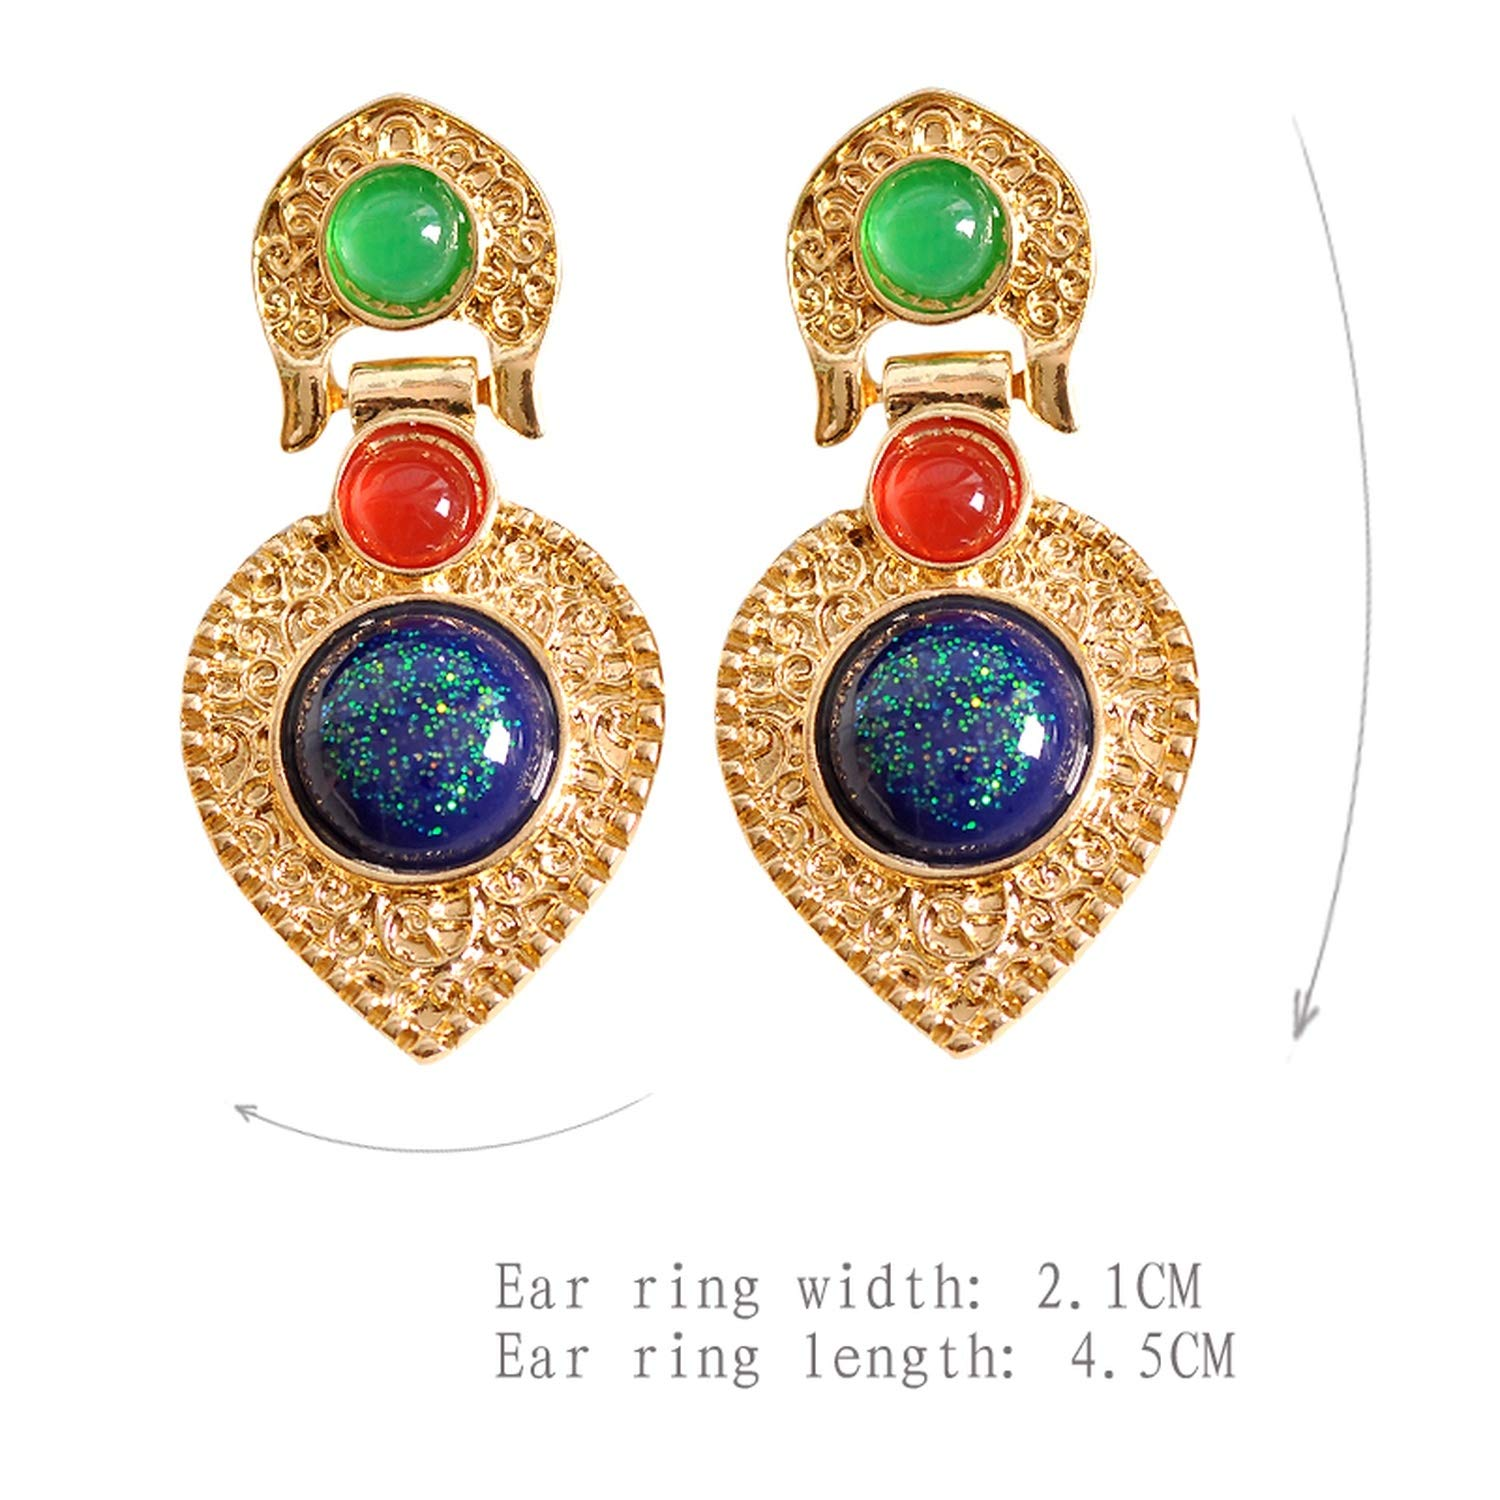 Selling New Gorgeous Women Jewelry Girls Birthday Party Stud Earrings Earrings Gift Shipping Agent